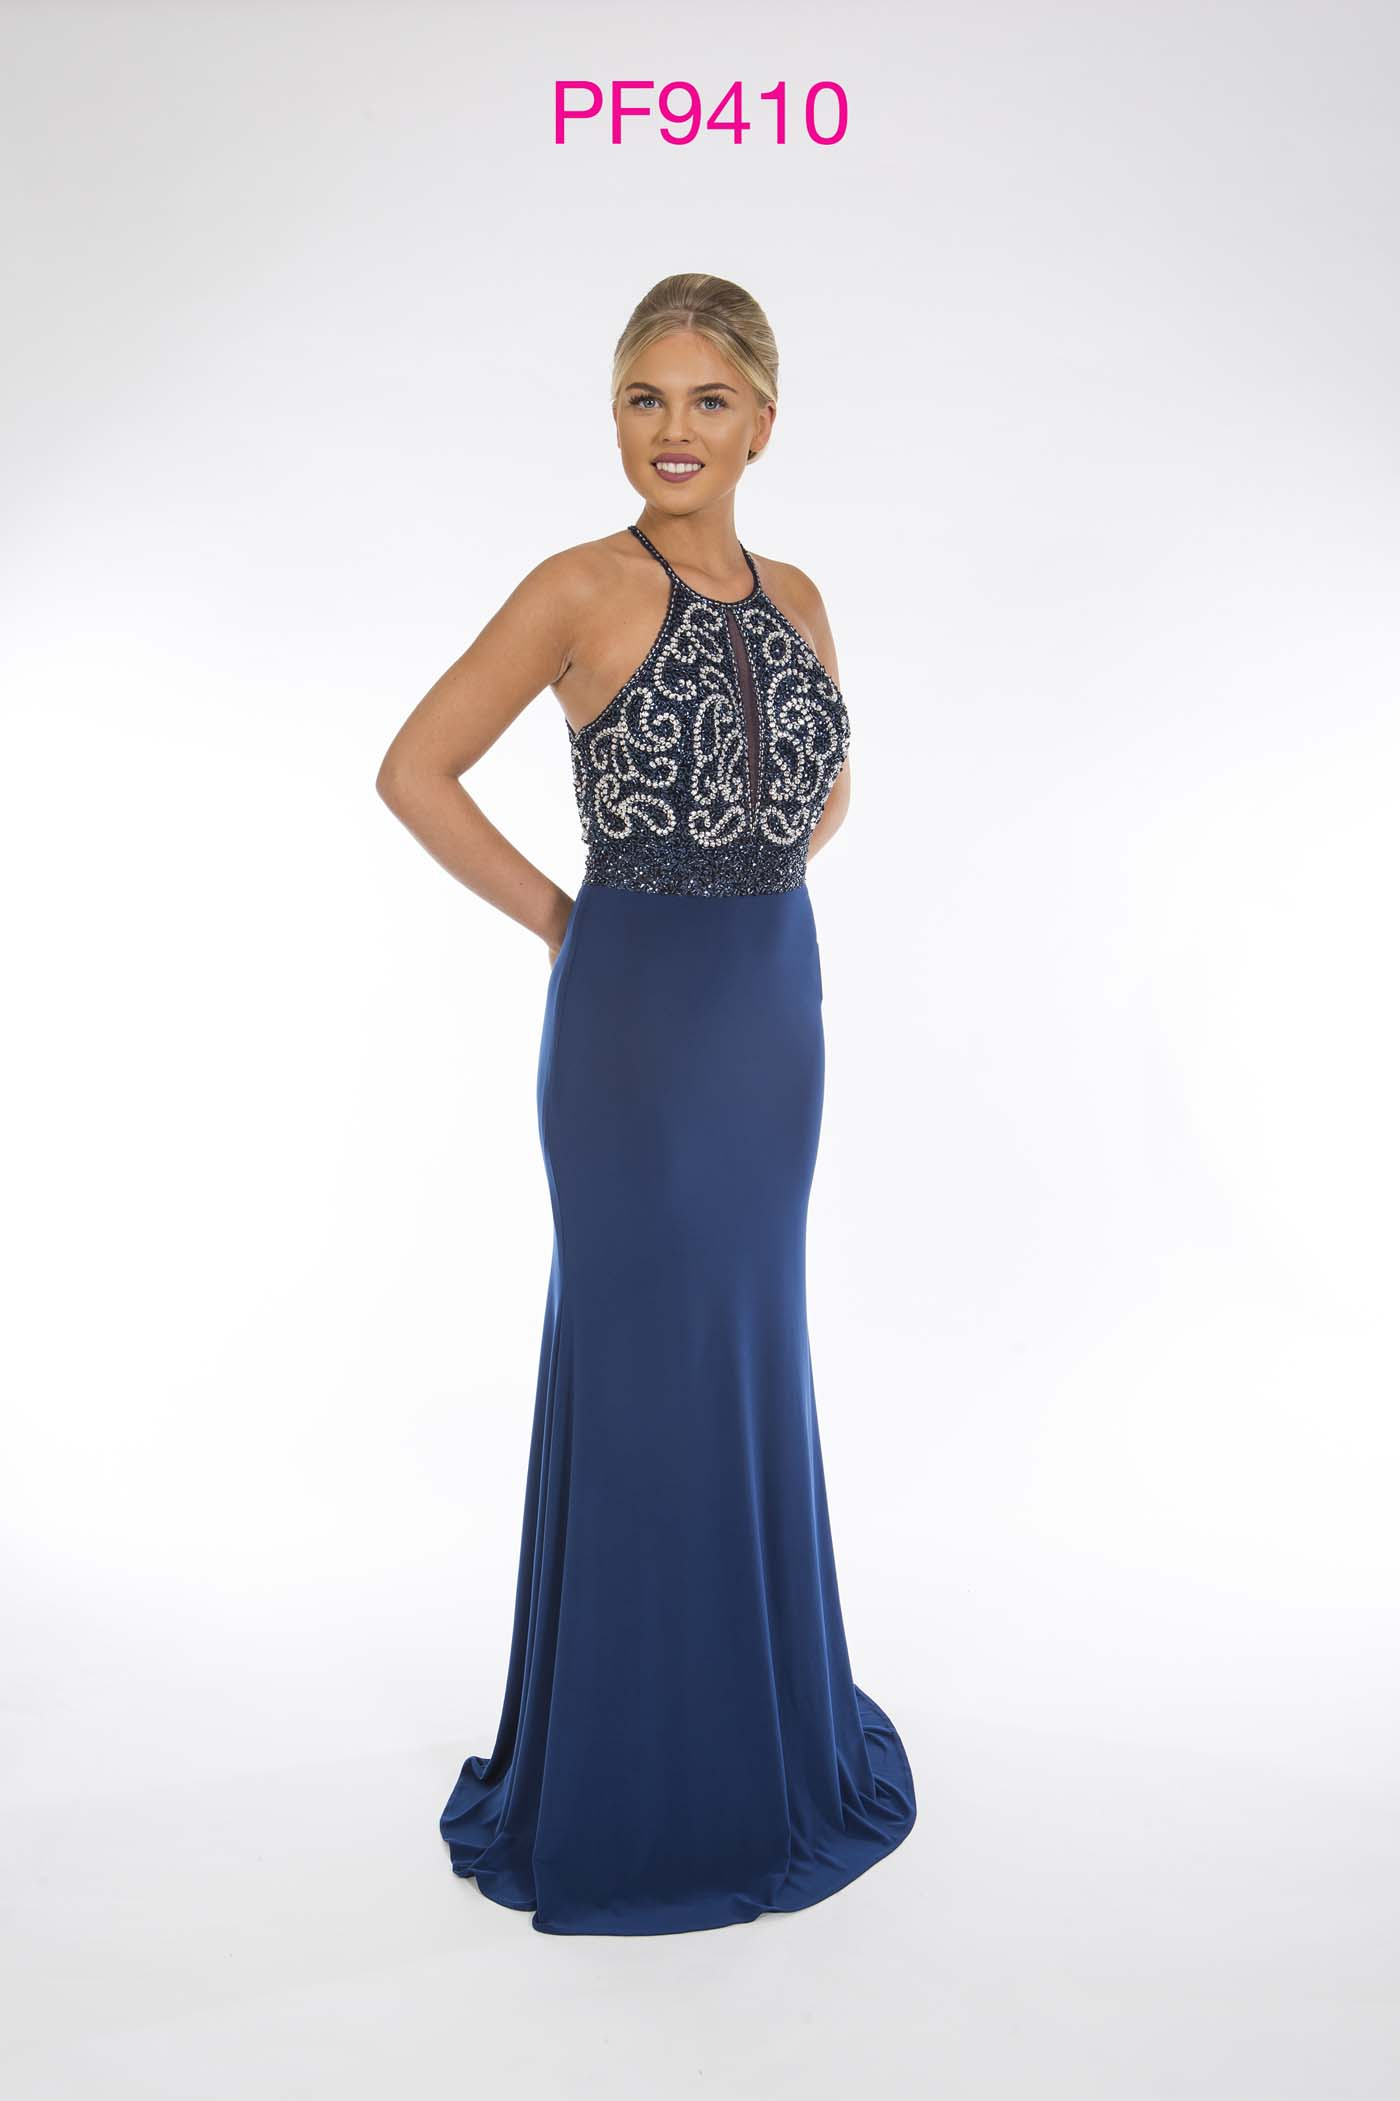 Prom girl wearing french navy fitted jersey gown with sliver beaded top and cross over straps at back.